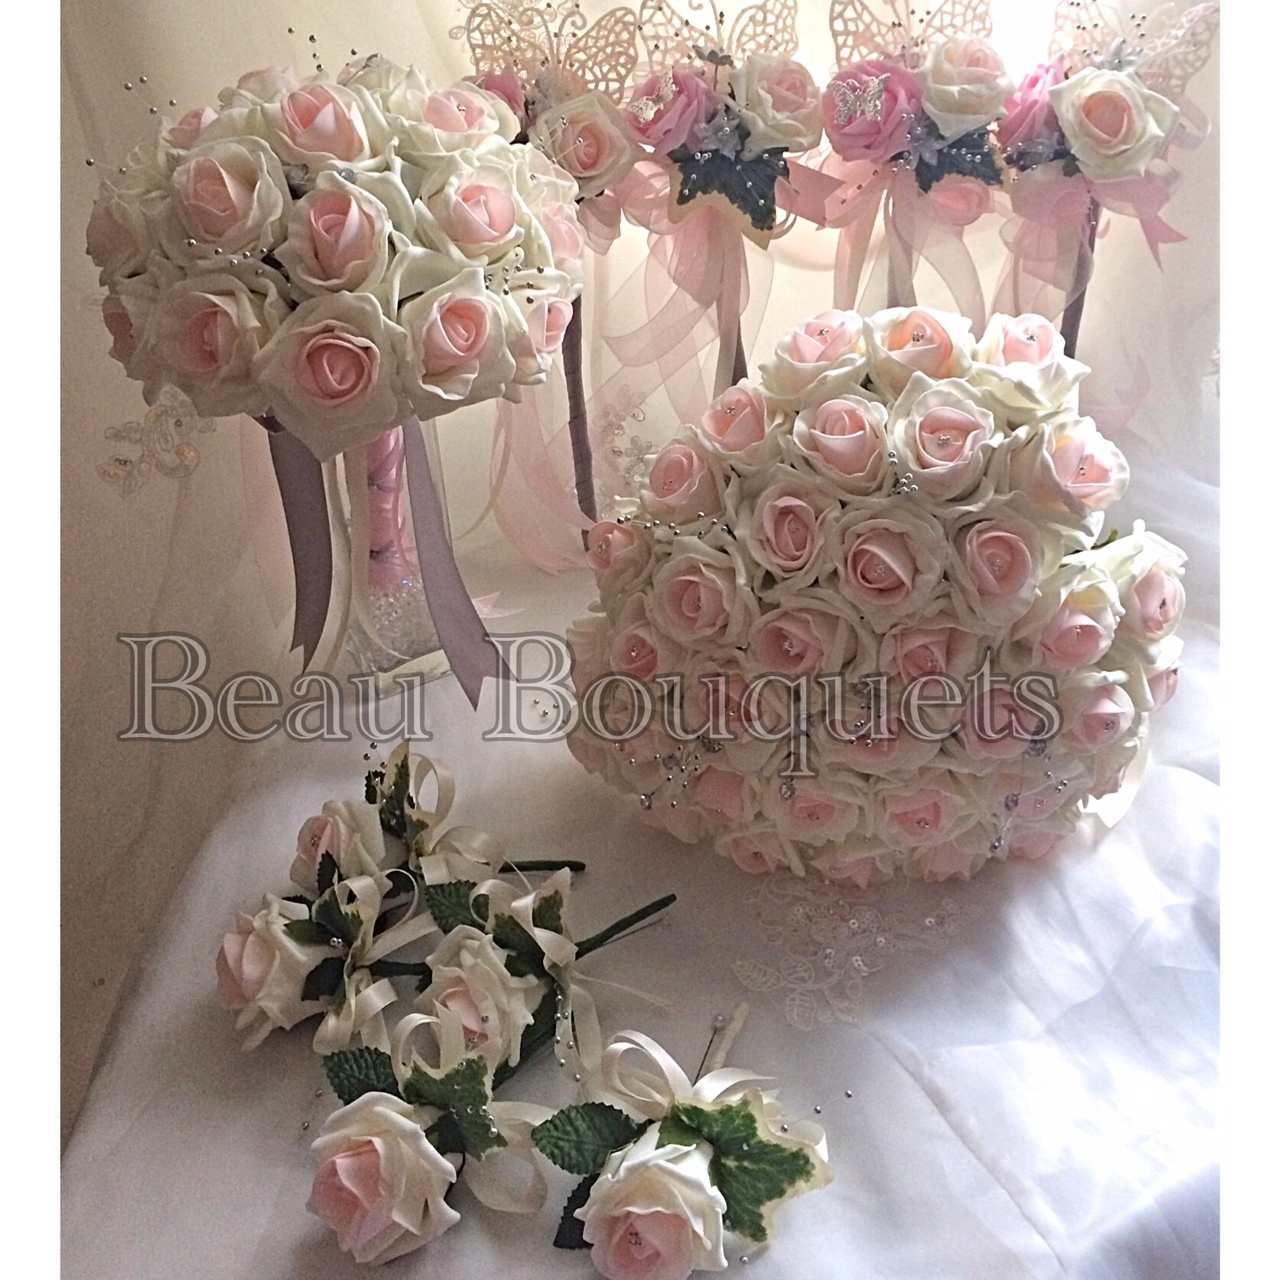 SWEETHEART - Rose love-heart Bride bouquet package Pink blush foam rose Love heart shaped bride bouquet with full handle & diamante detail